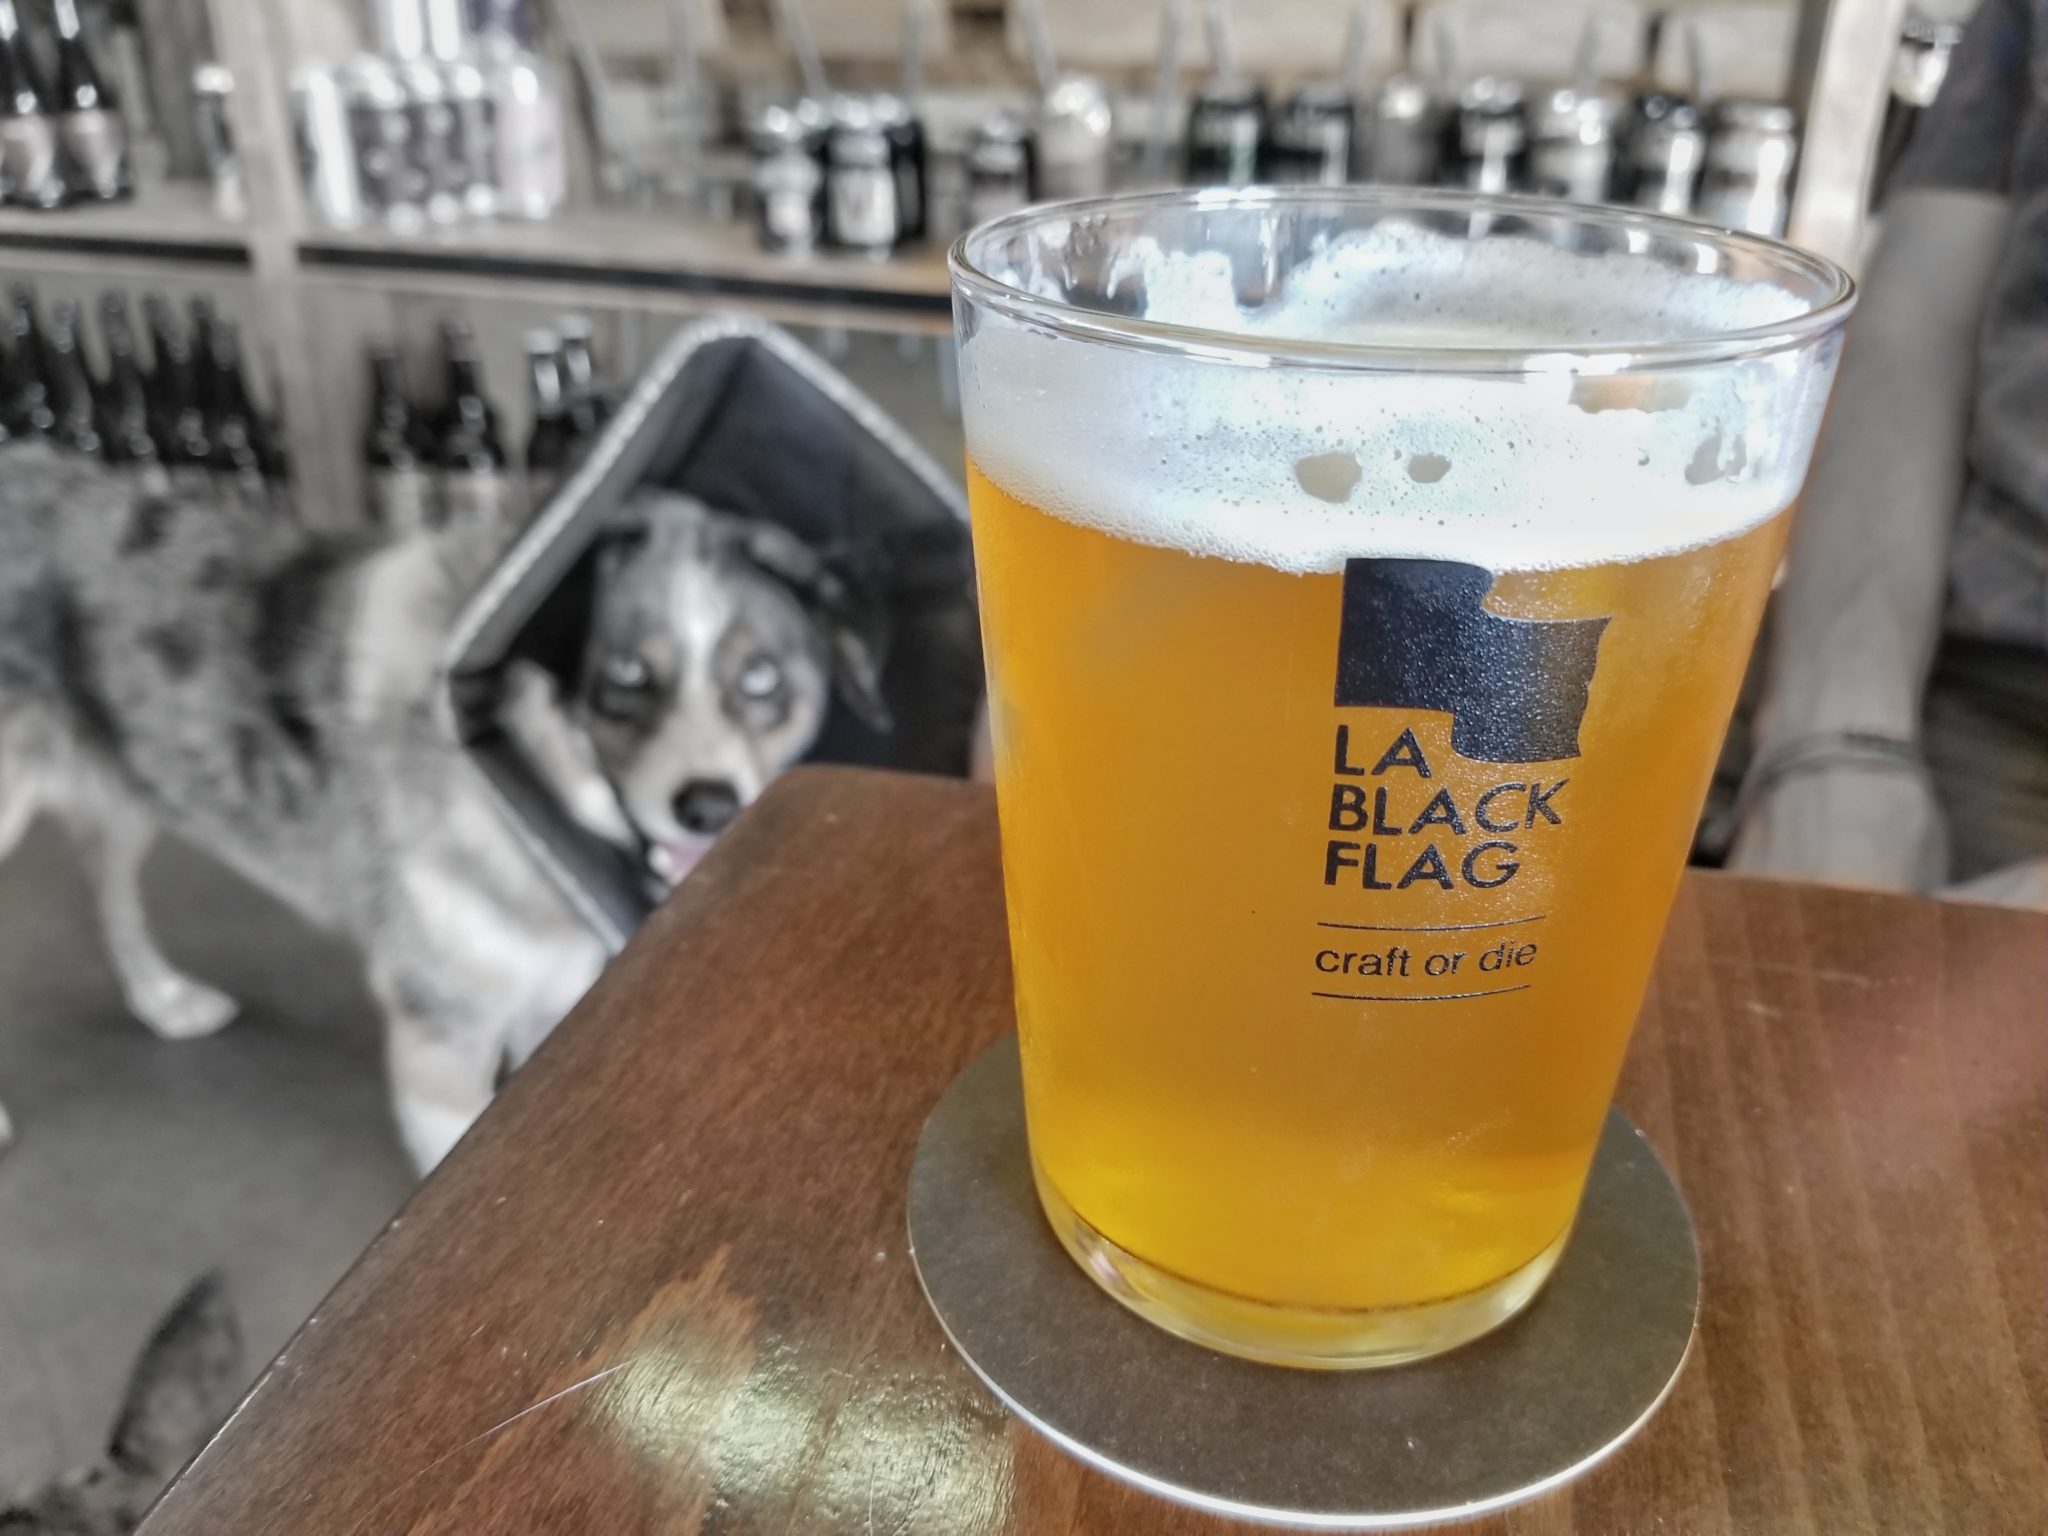 Visit La Black Flag, a dog-friendly brewery in Girona, Spain.